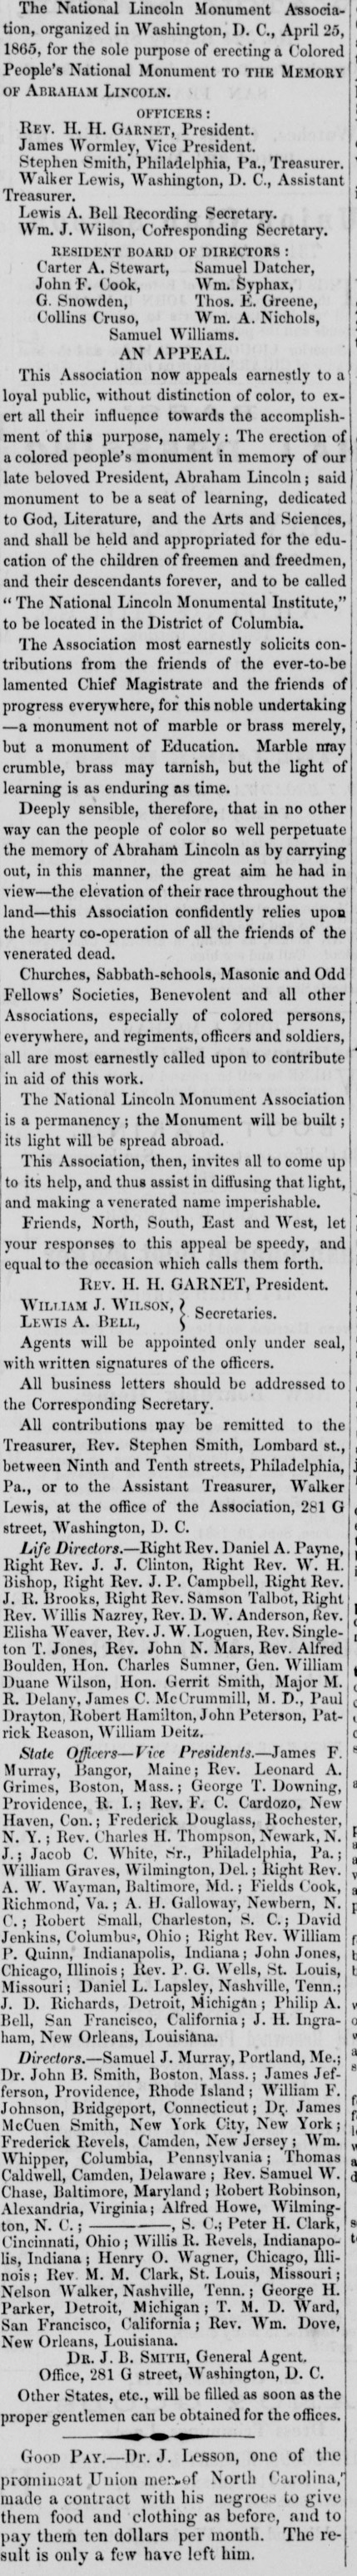 Henry Highland Garnet announces the campaign to build a monument to Lincoln, The Elevator, August 11, 1865.